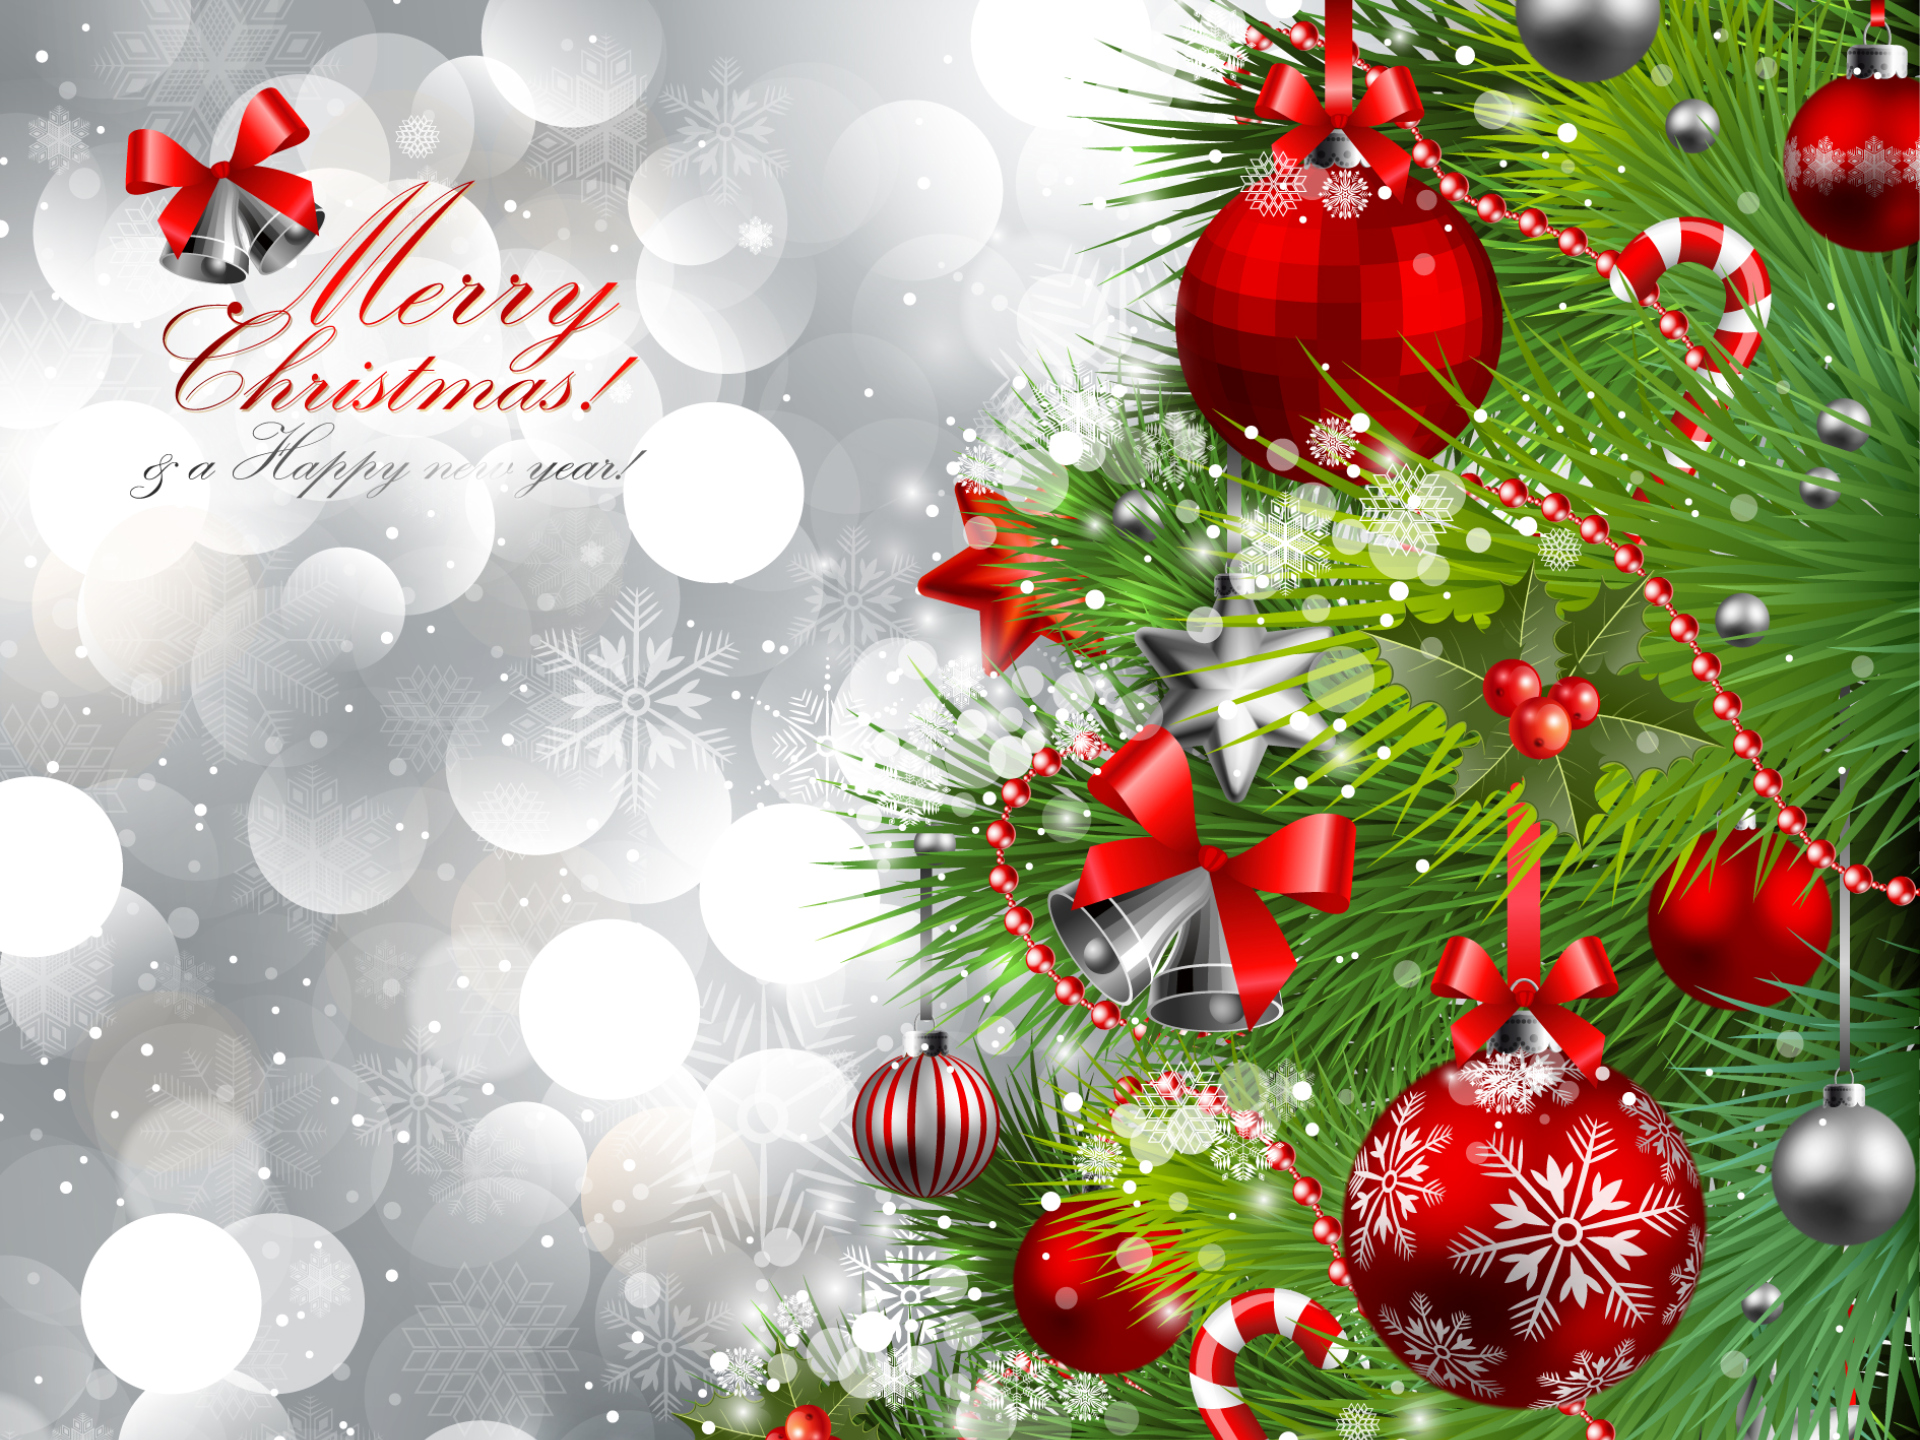 Merry Christmas Wallpaper Pics